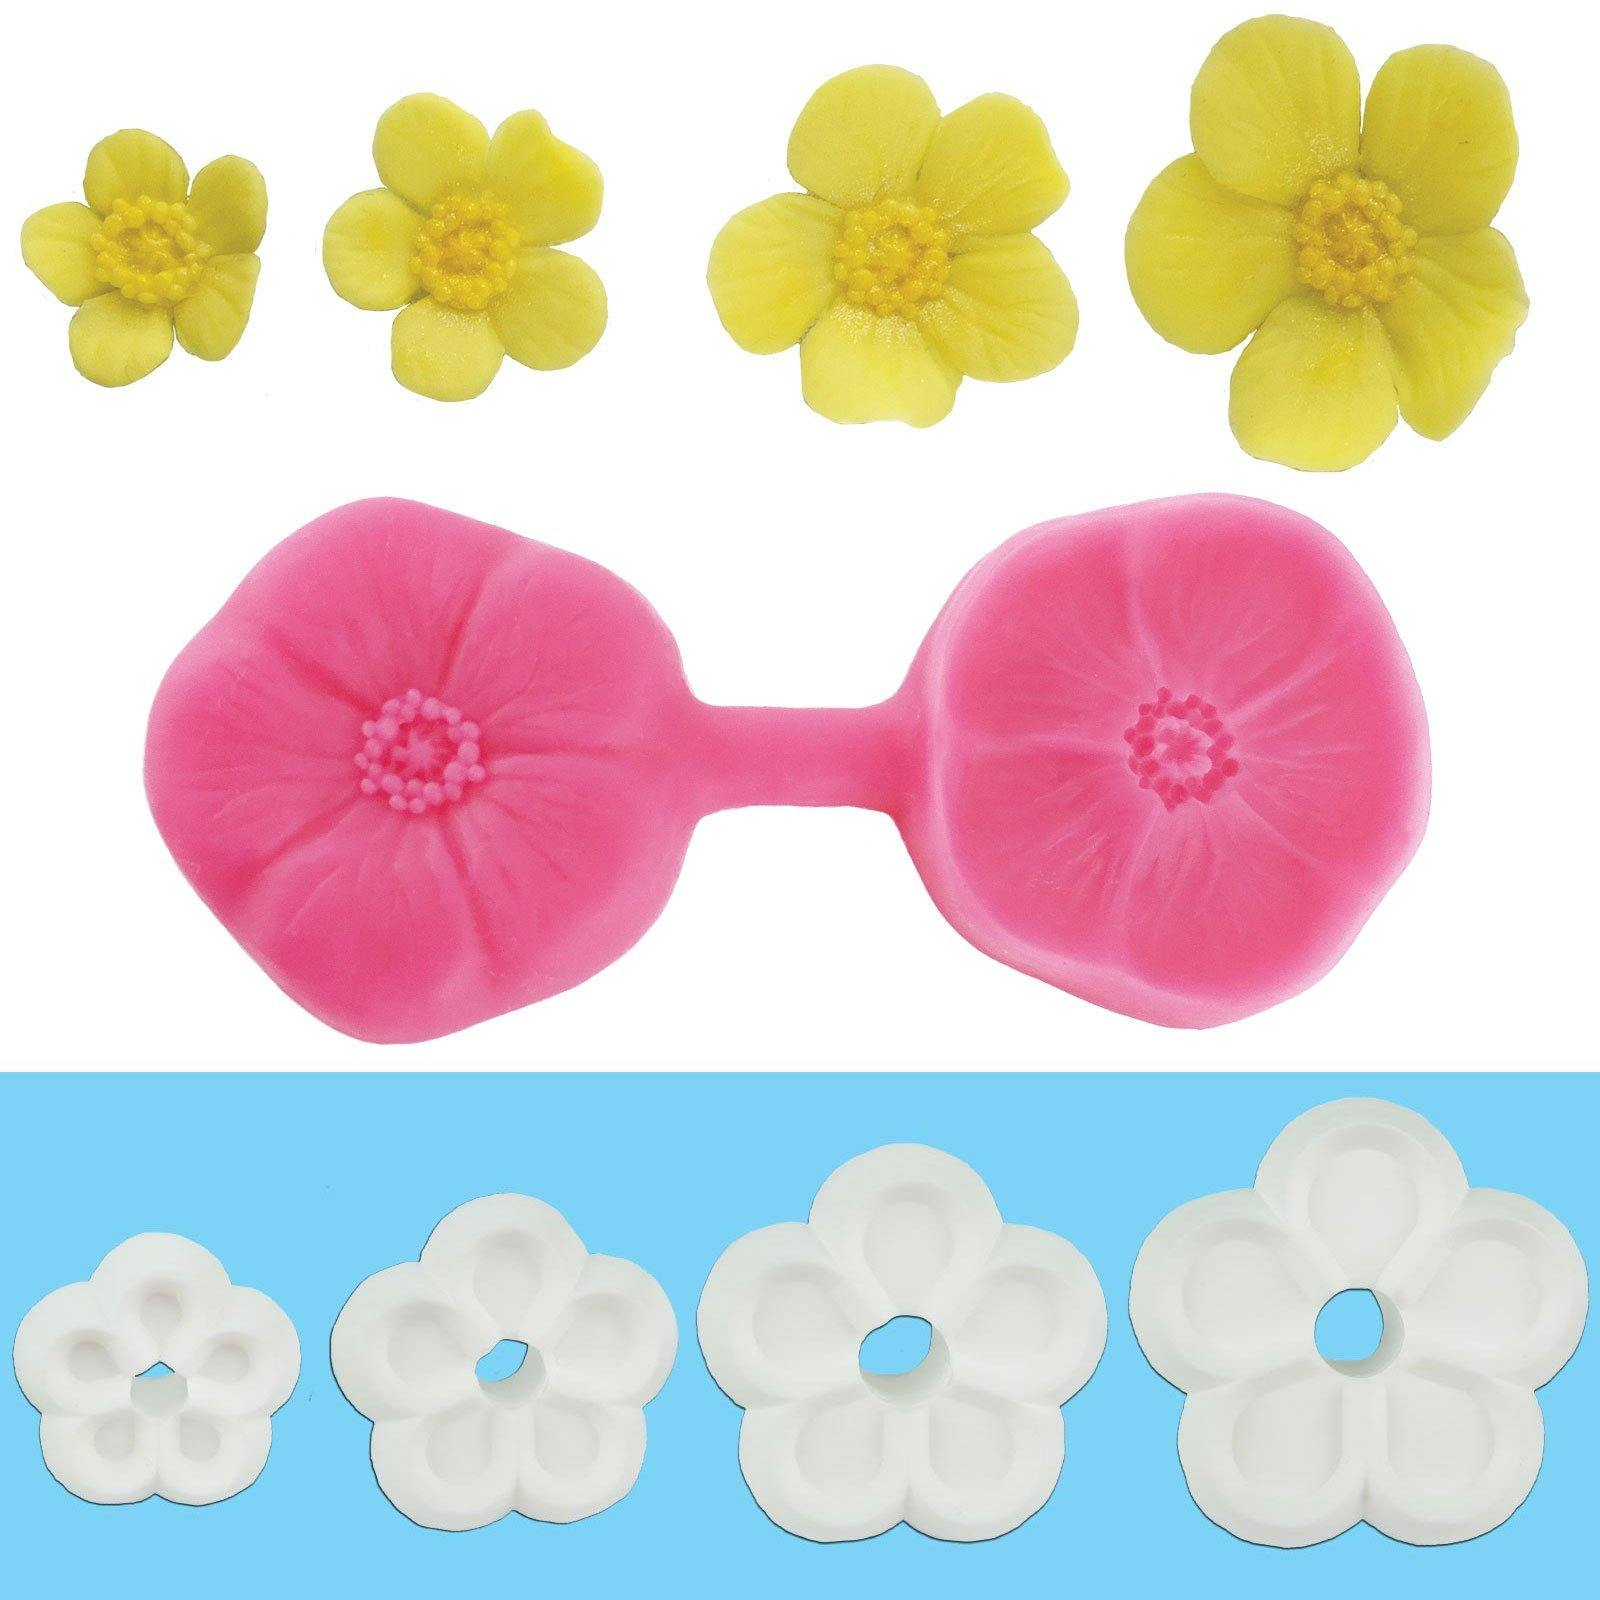 Buttercup Collection - Blossom Sugar Art cake_decorating_mold craft_mold icing_flowers